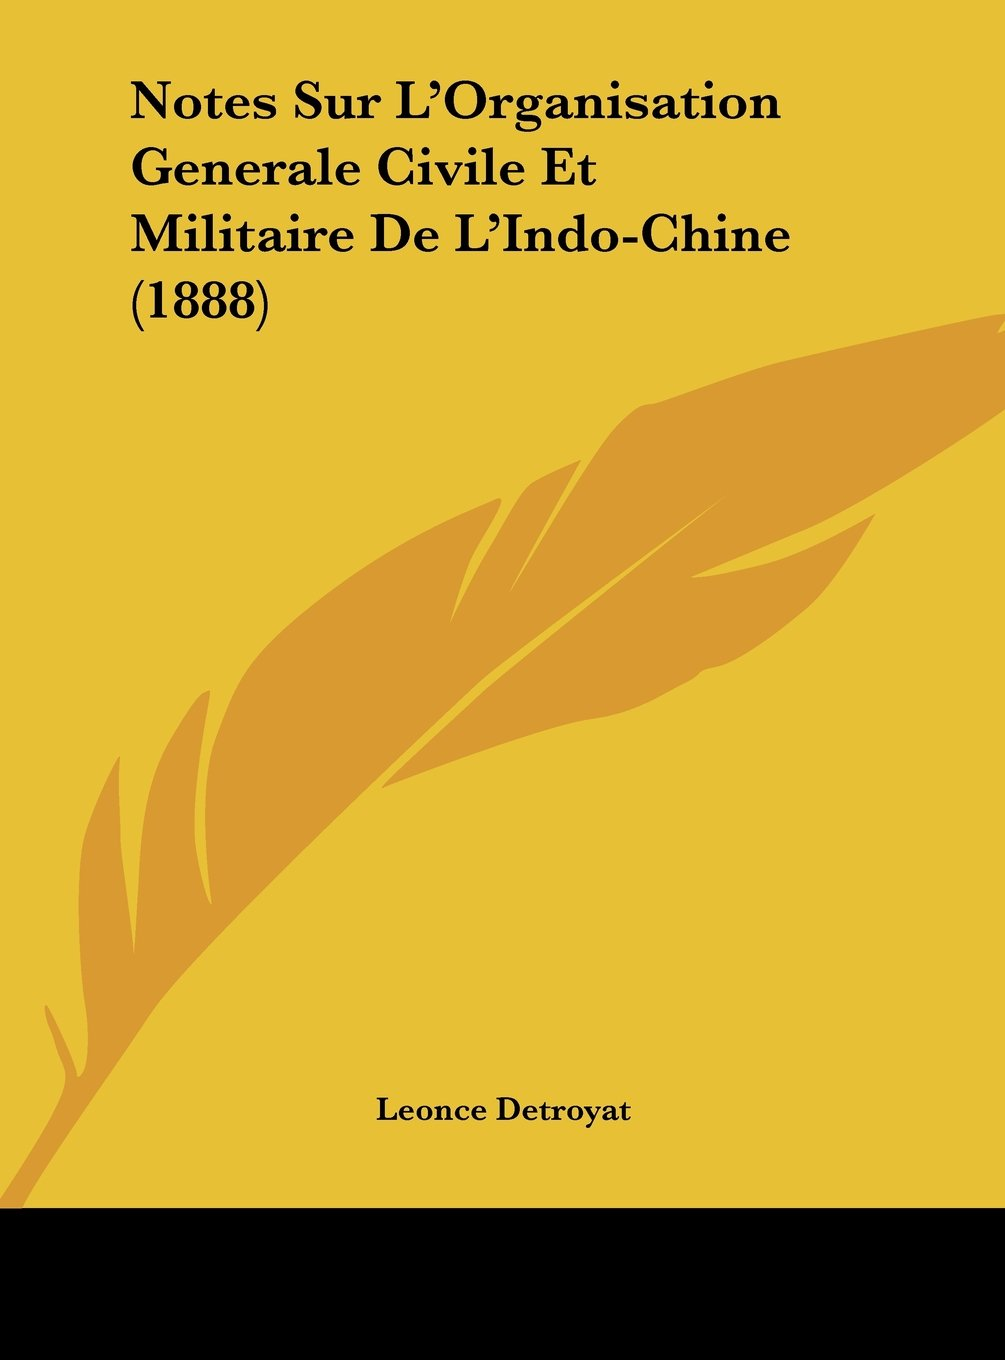 Download Notes Sur L'Organisation Generale Civile Et Militaire De L'Indo-Chine (1888) (French Edition) pdf